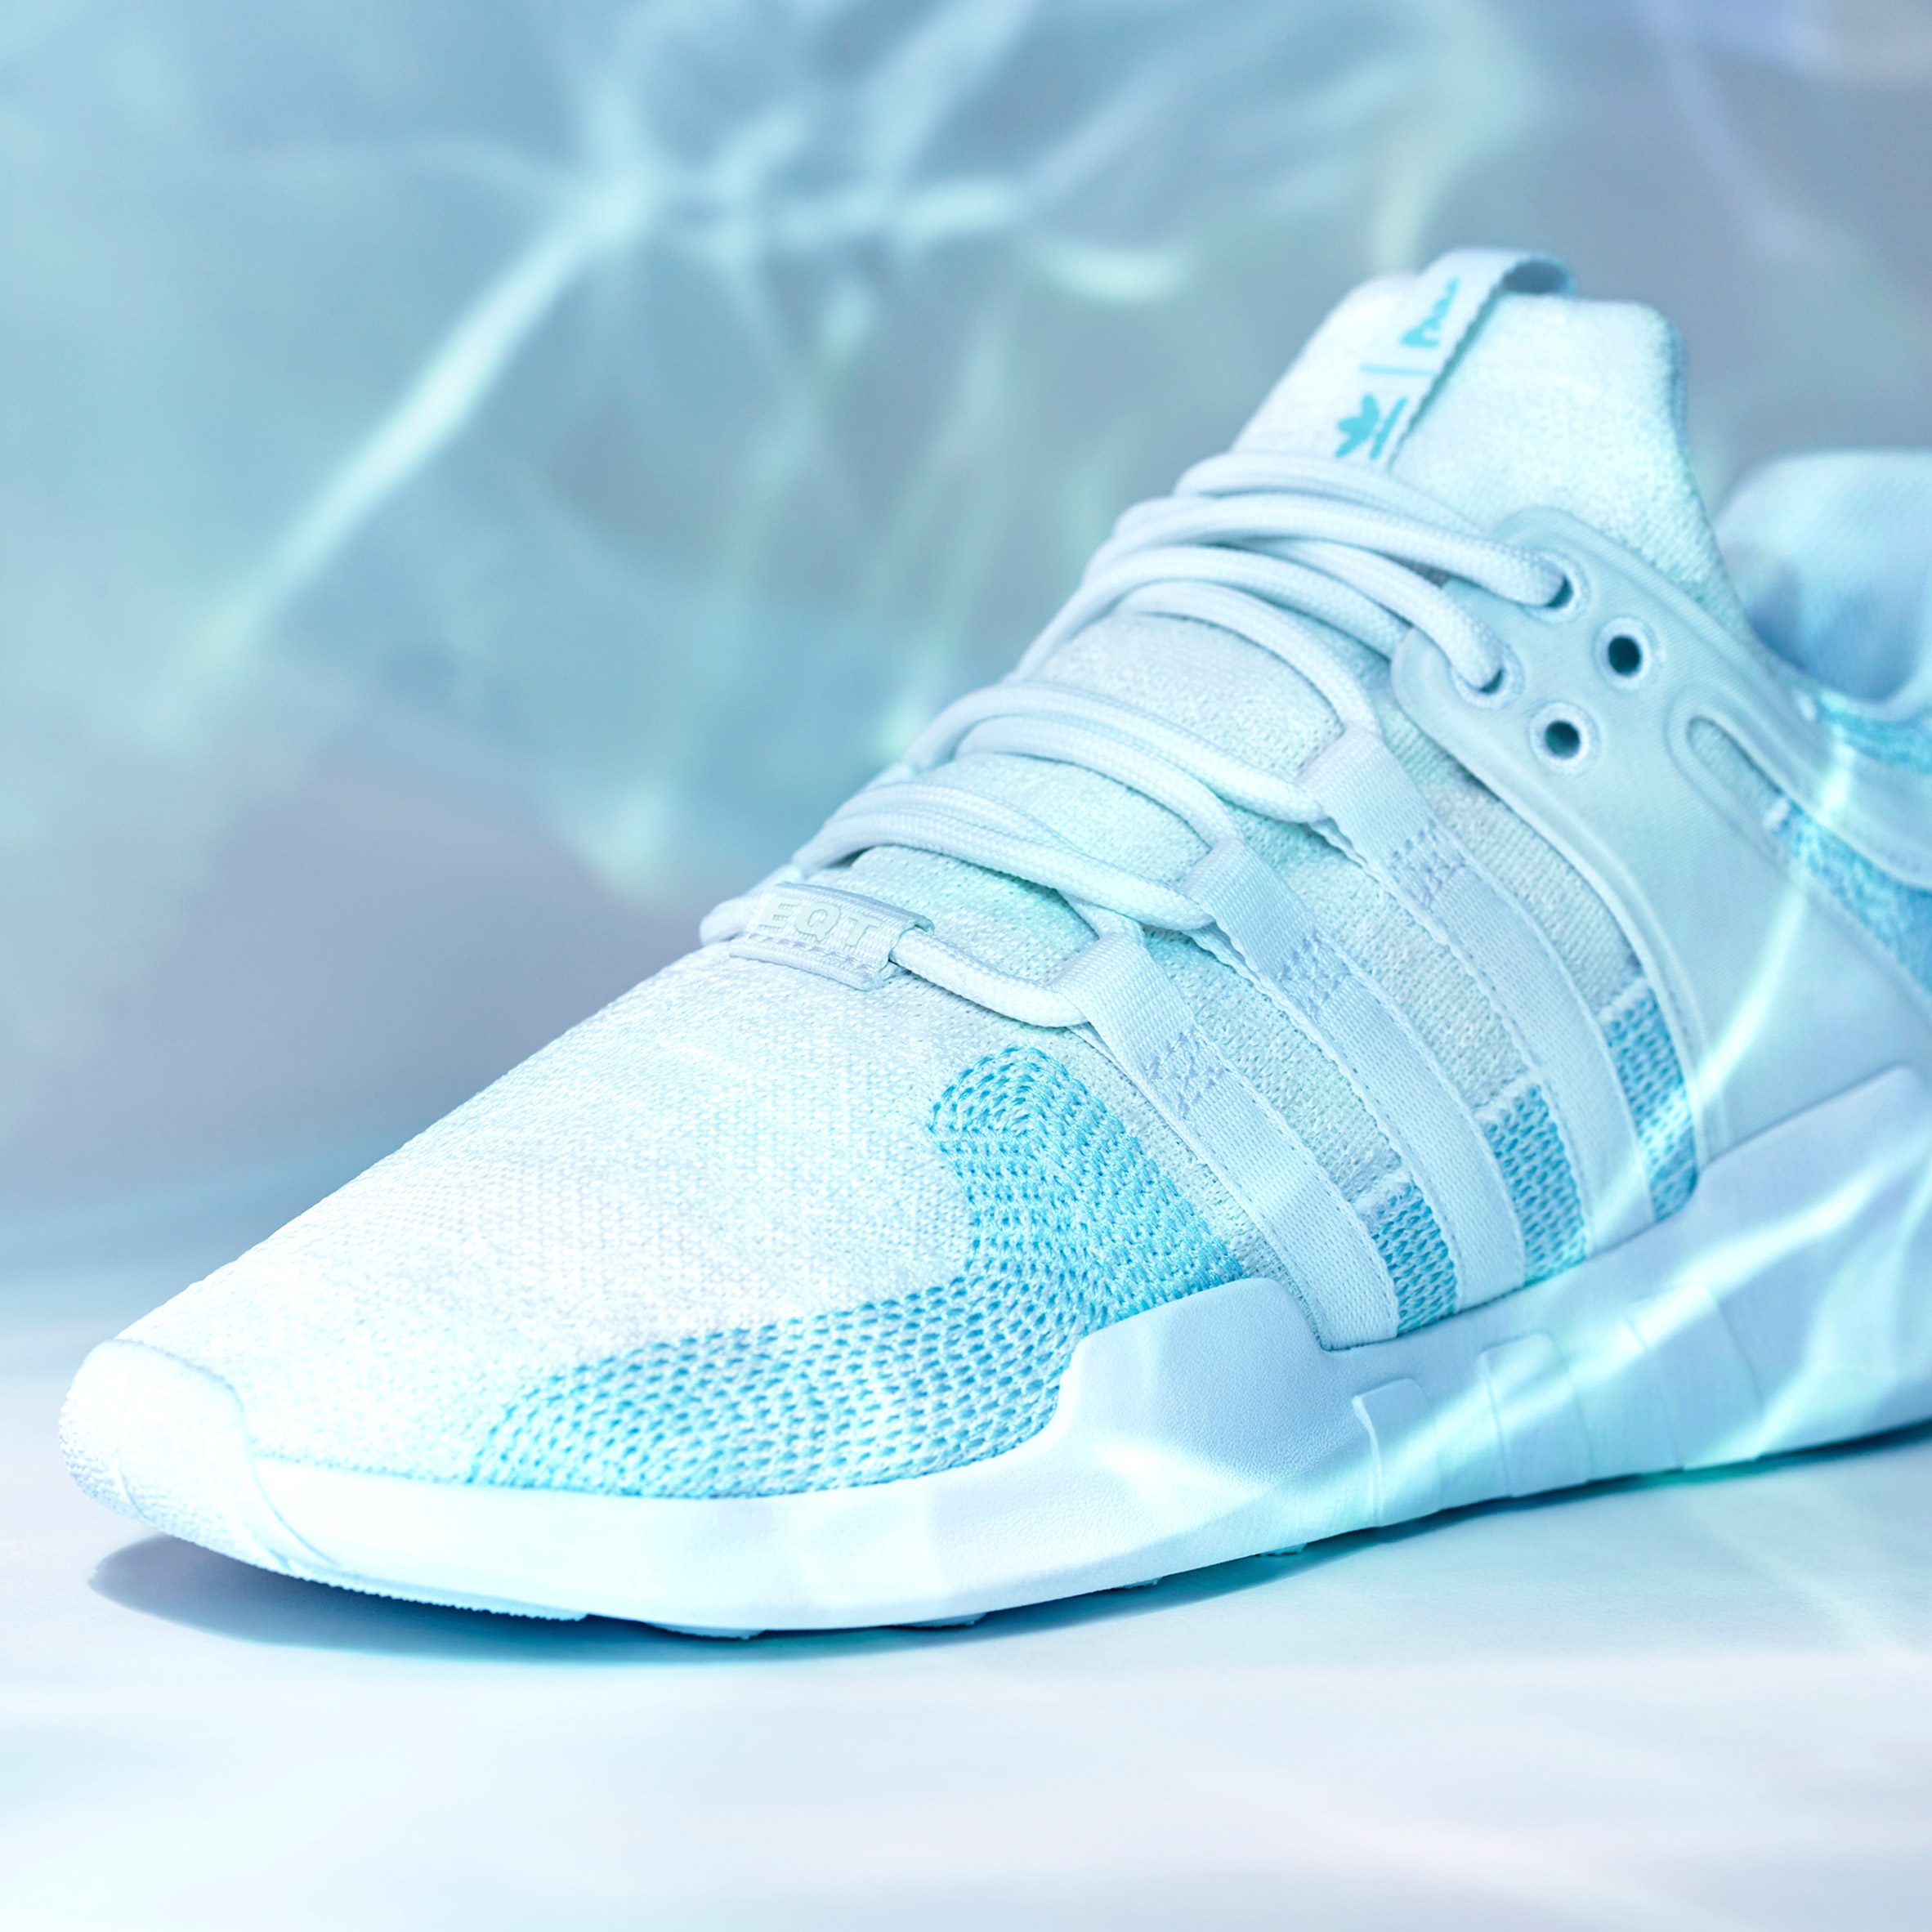 online store 70ec6 efcd1 Adidas uses Parley ocean plastic to update one of its classic shoe ...